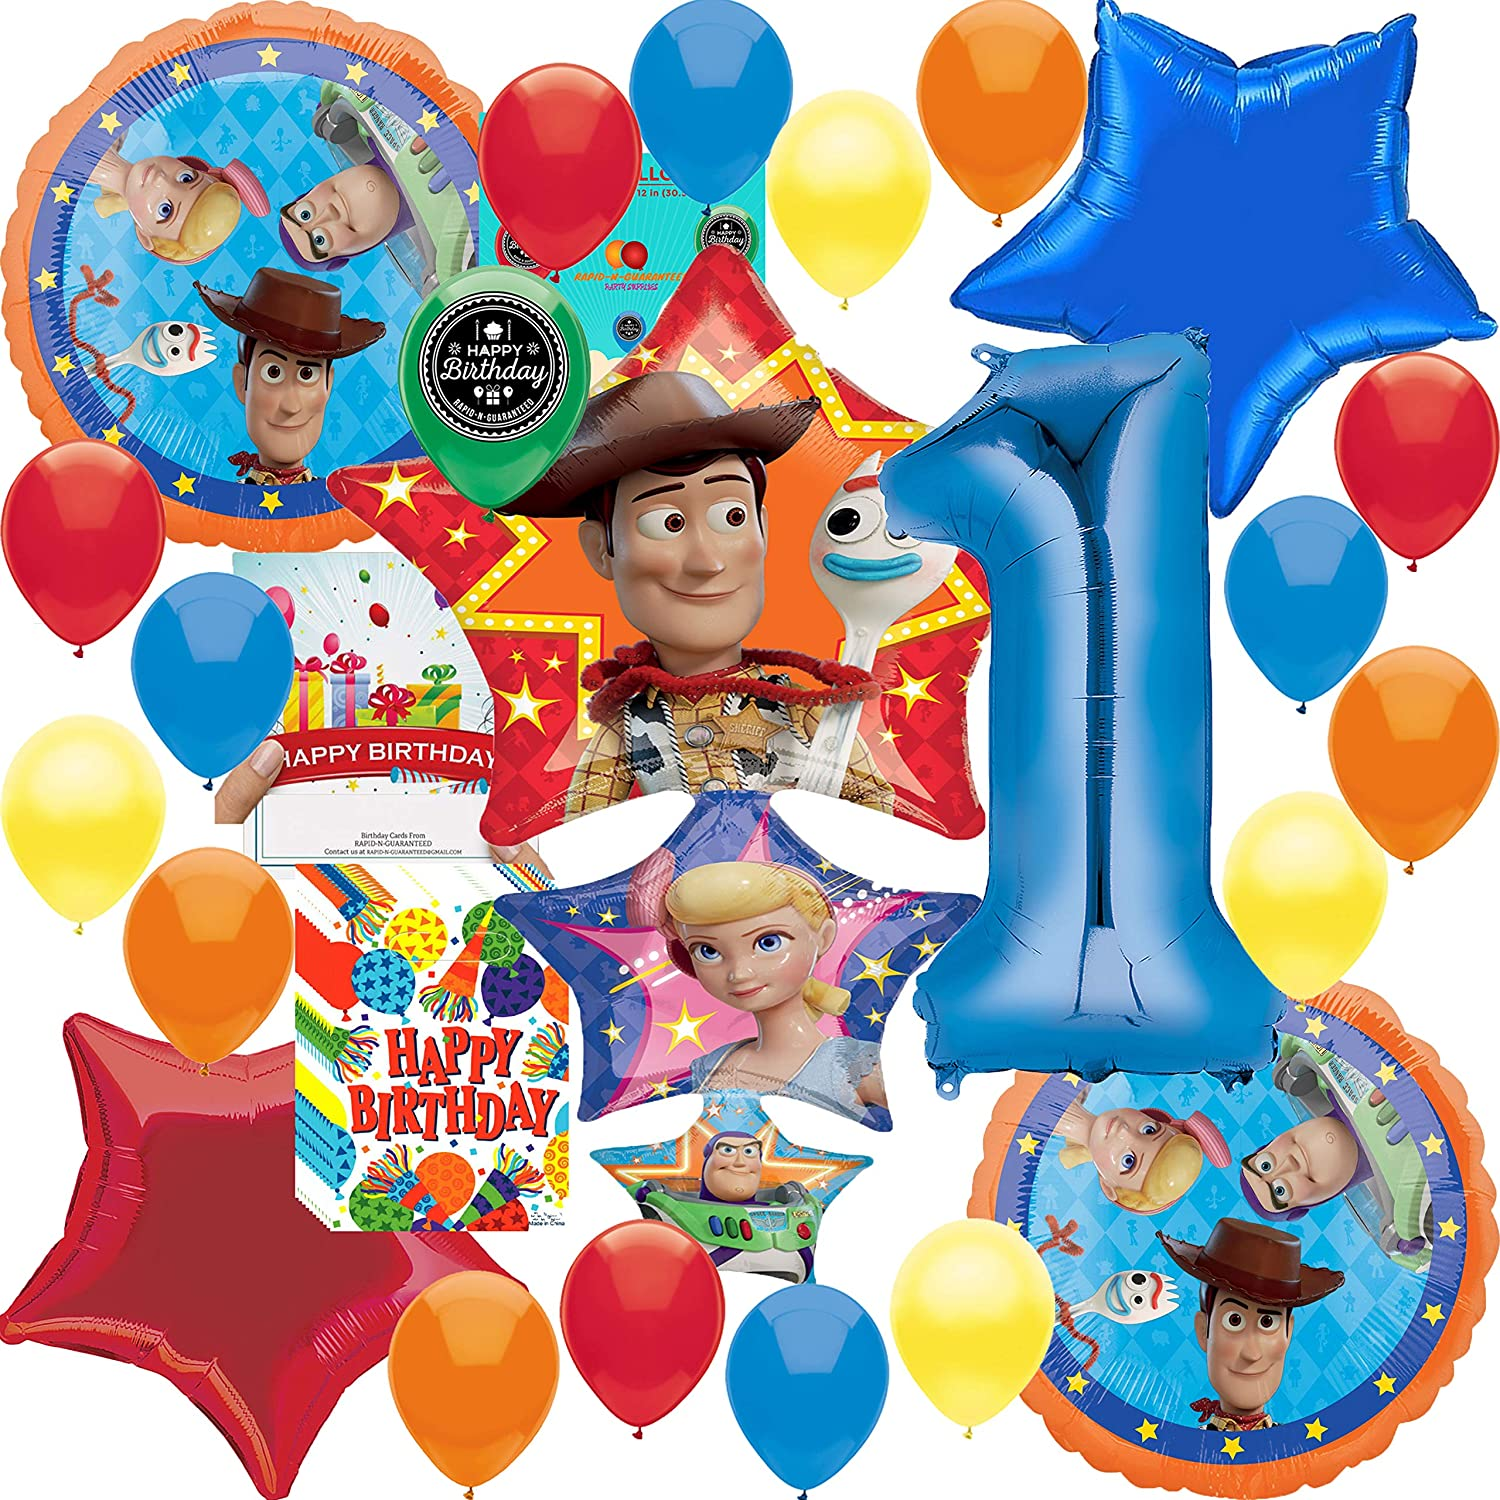 Amazon Com Toy Story 4 Party Supplies Balloon Decoration Deluxe Bundle With Birthday Card And Happy Birthday Treat Bags 1st Birthday Toys Games